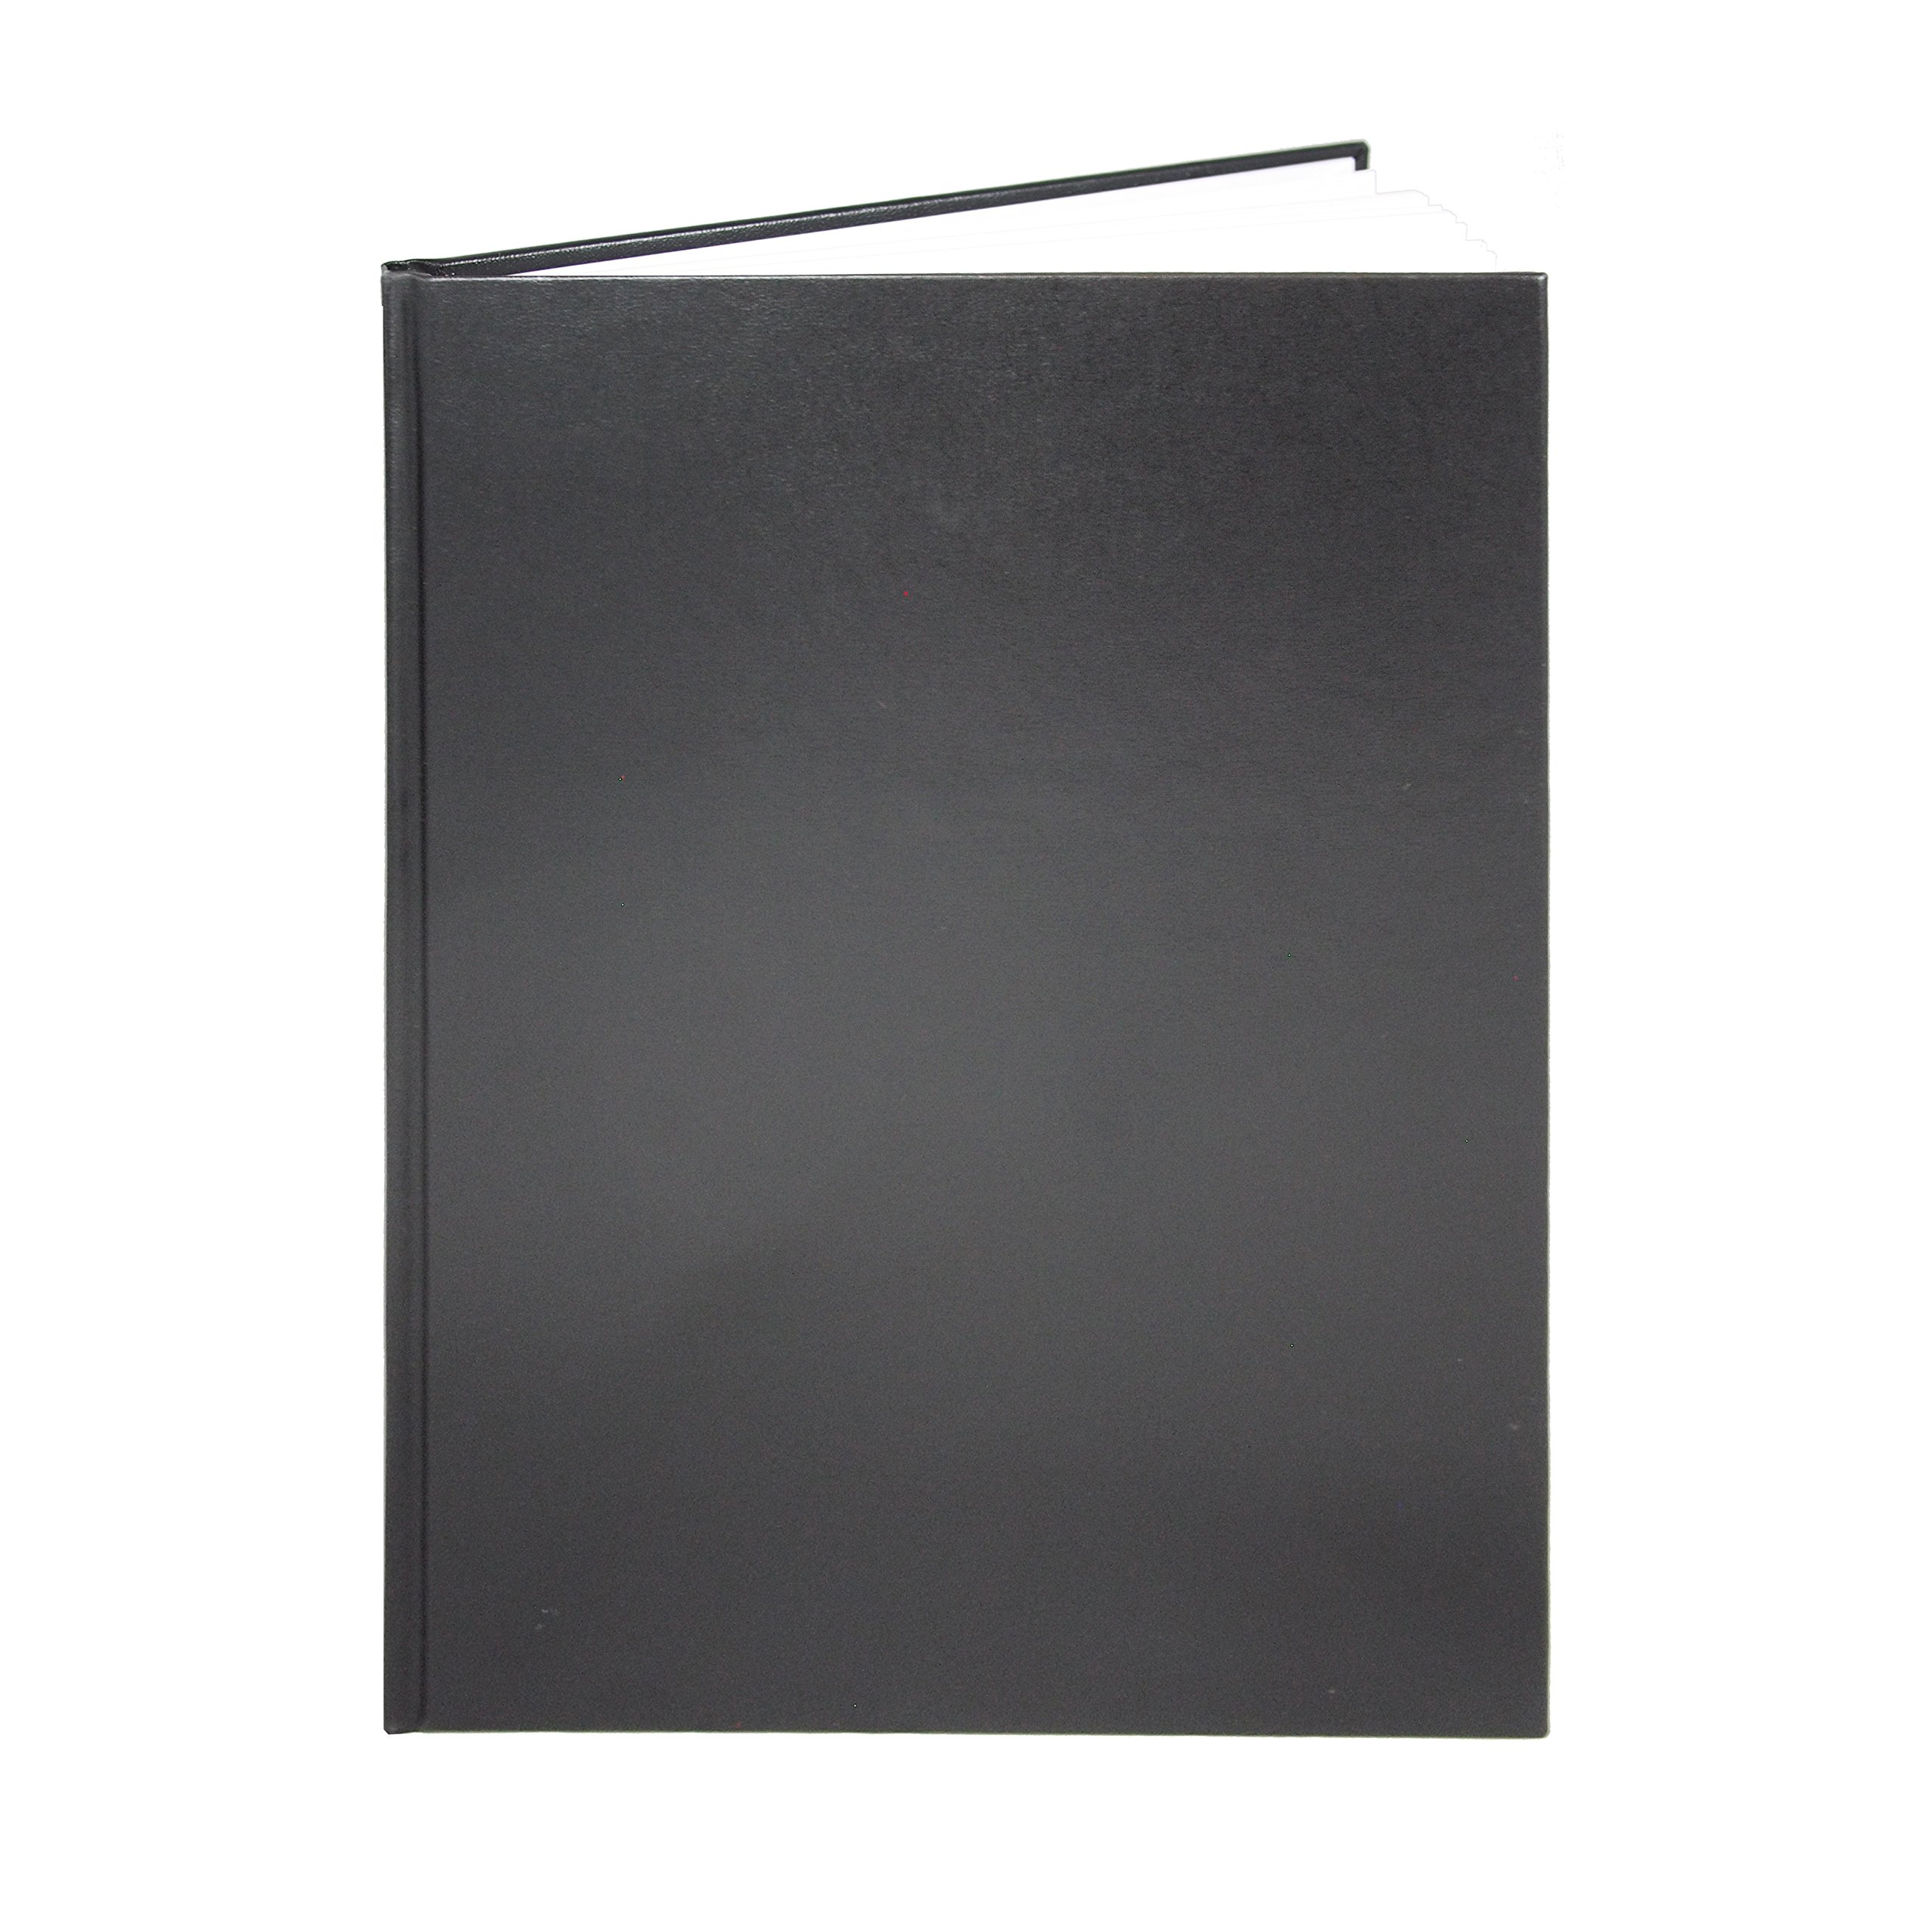 BookFactory Black Blank Notebook / Blank Book / Unruled Notebook - 96 Pages, Blank Format, 8'' x 10'', Black Cover, Smyth Sewn Hardbound (BLA-096-SBB-A-LKT00)